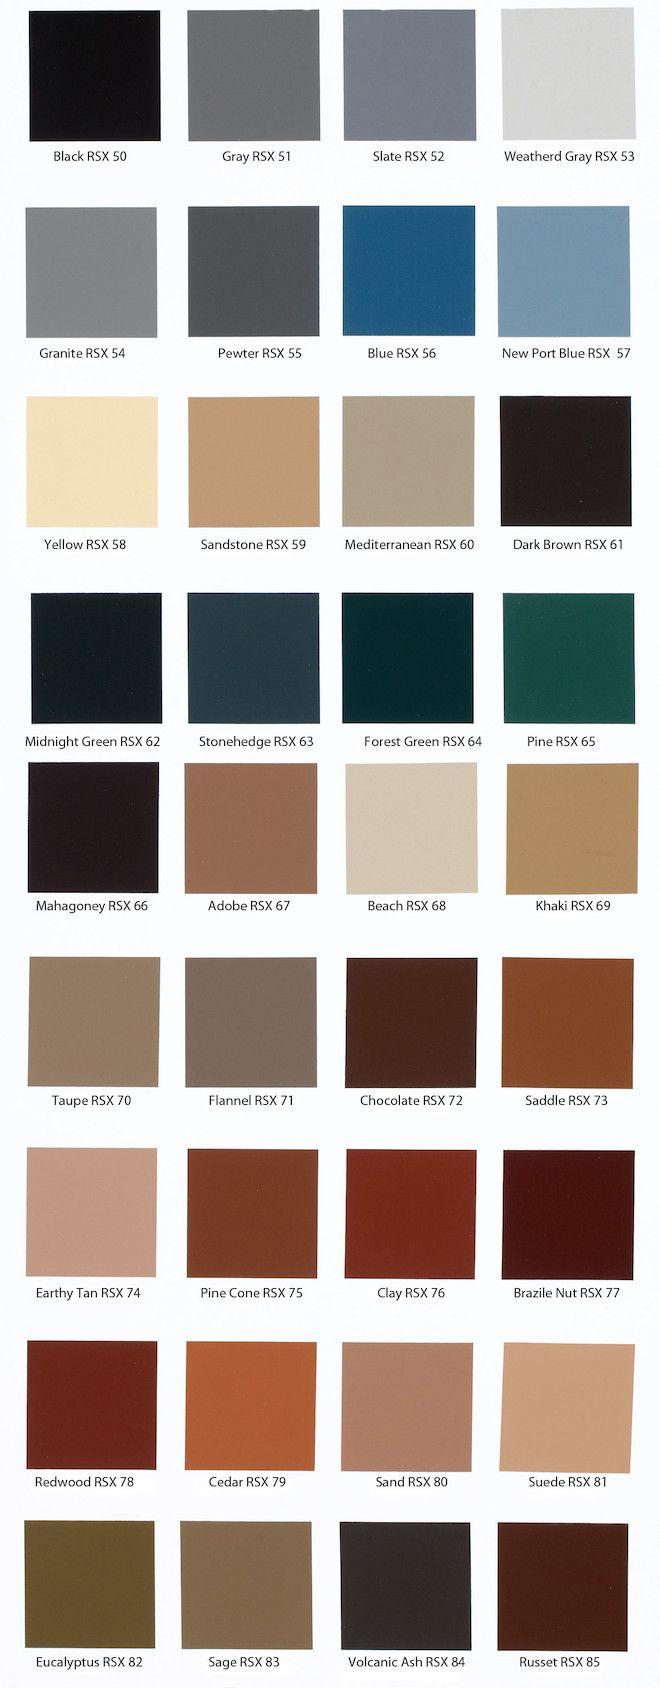 Behr solid concrete stain color chart pinteres behr solid concrete stain color chart more nvjuhfo Image collections